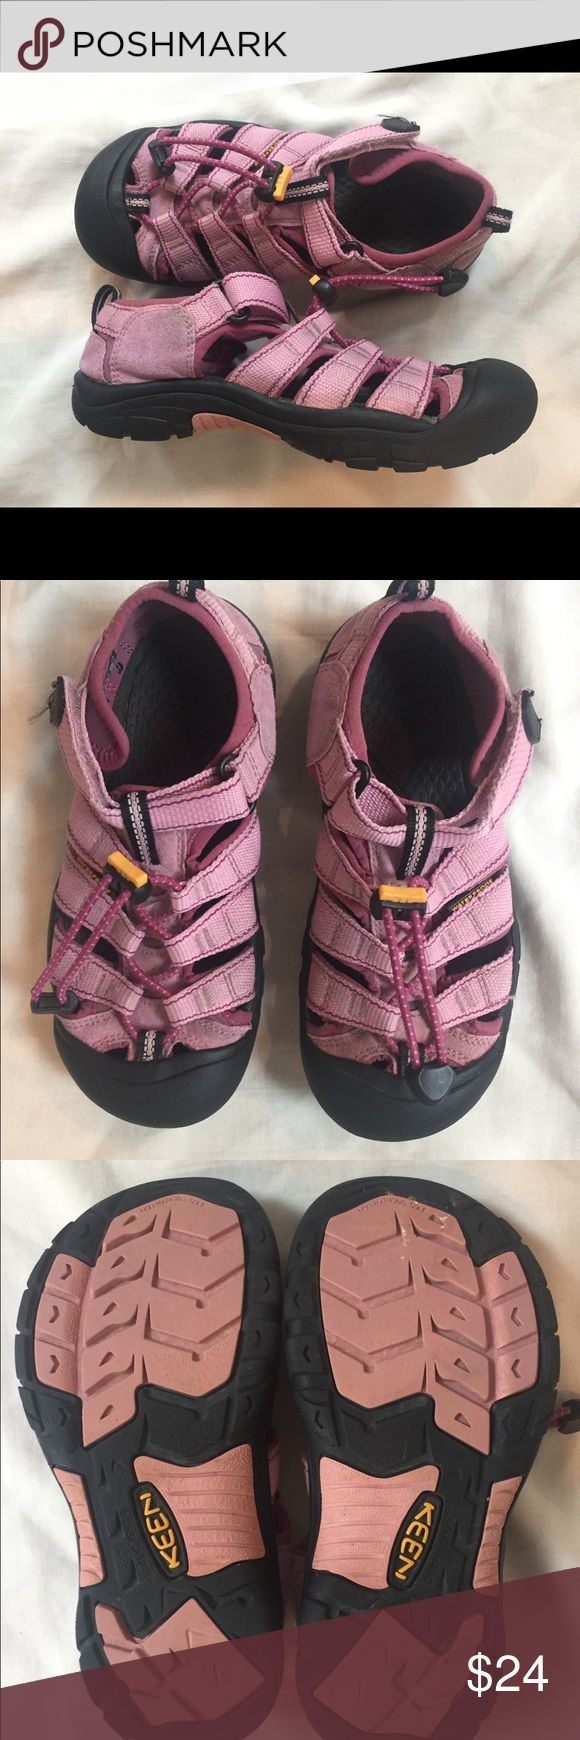 "Keen pink sandals Support your kid's feet as they grow with comfortable, protective sandals. Great for everyday use, hiking, water shoes etc. washable. Condition: gently used, no major flaws. Labeled ""2 US"" (girl, not toddler size). No trades. Cheers! Keen Shoes Sandals & Flip Flops"